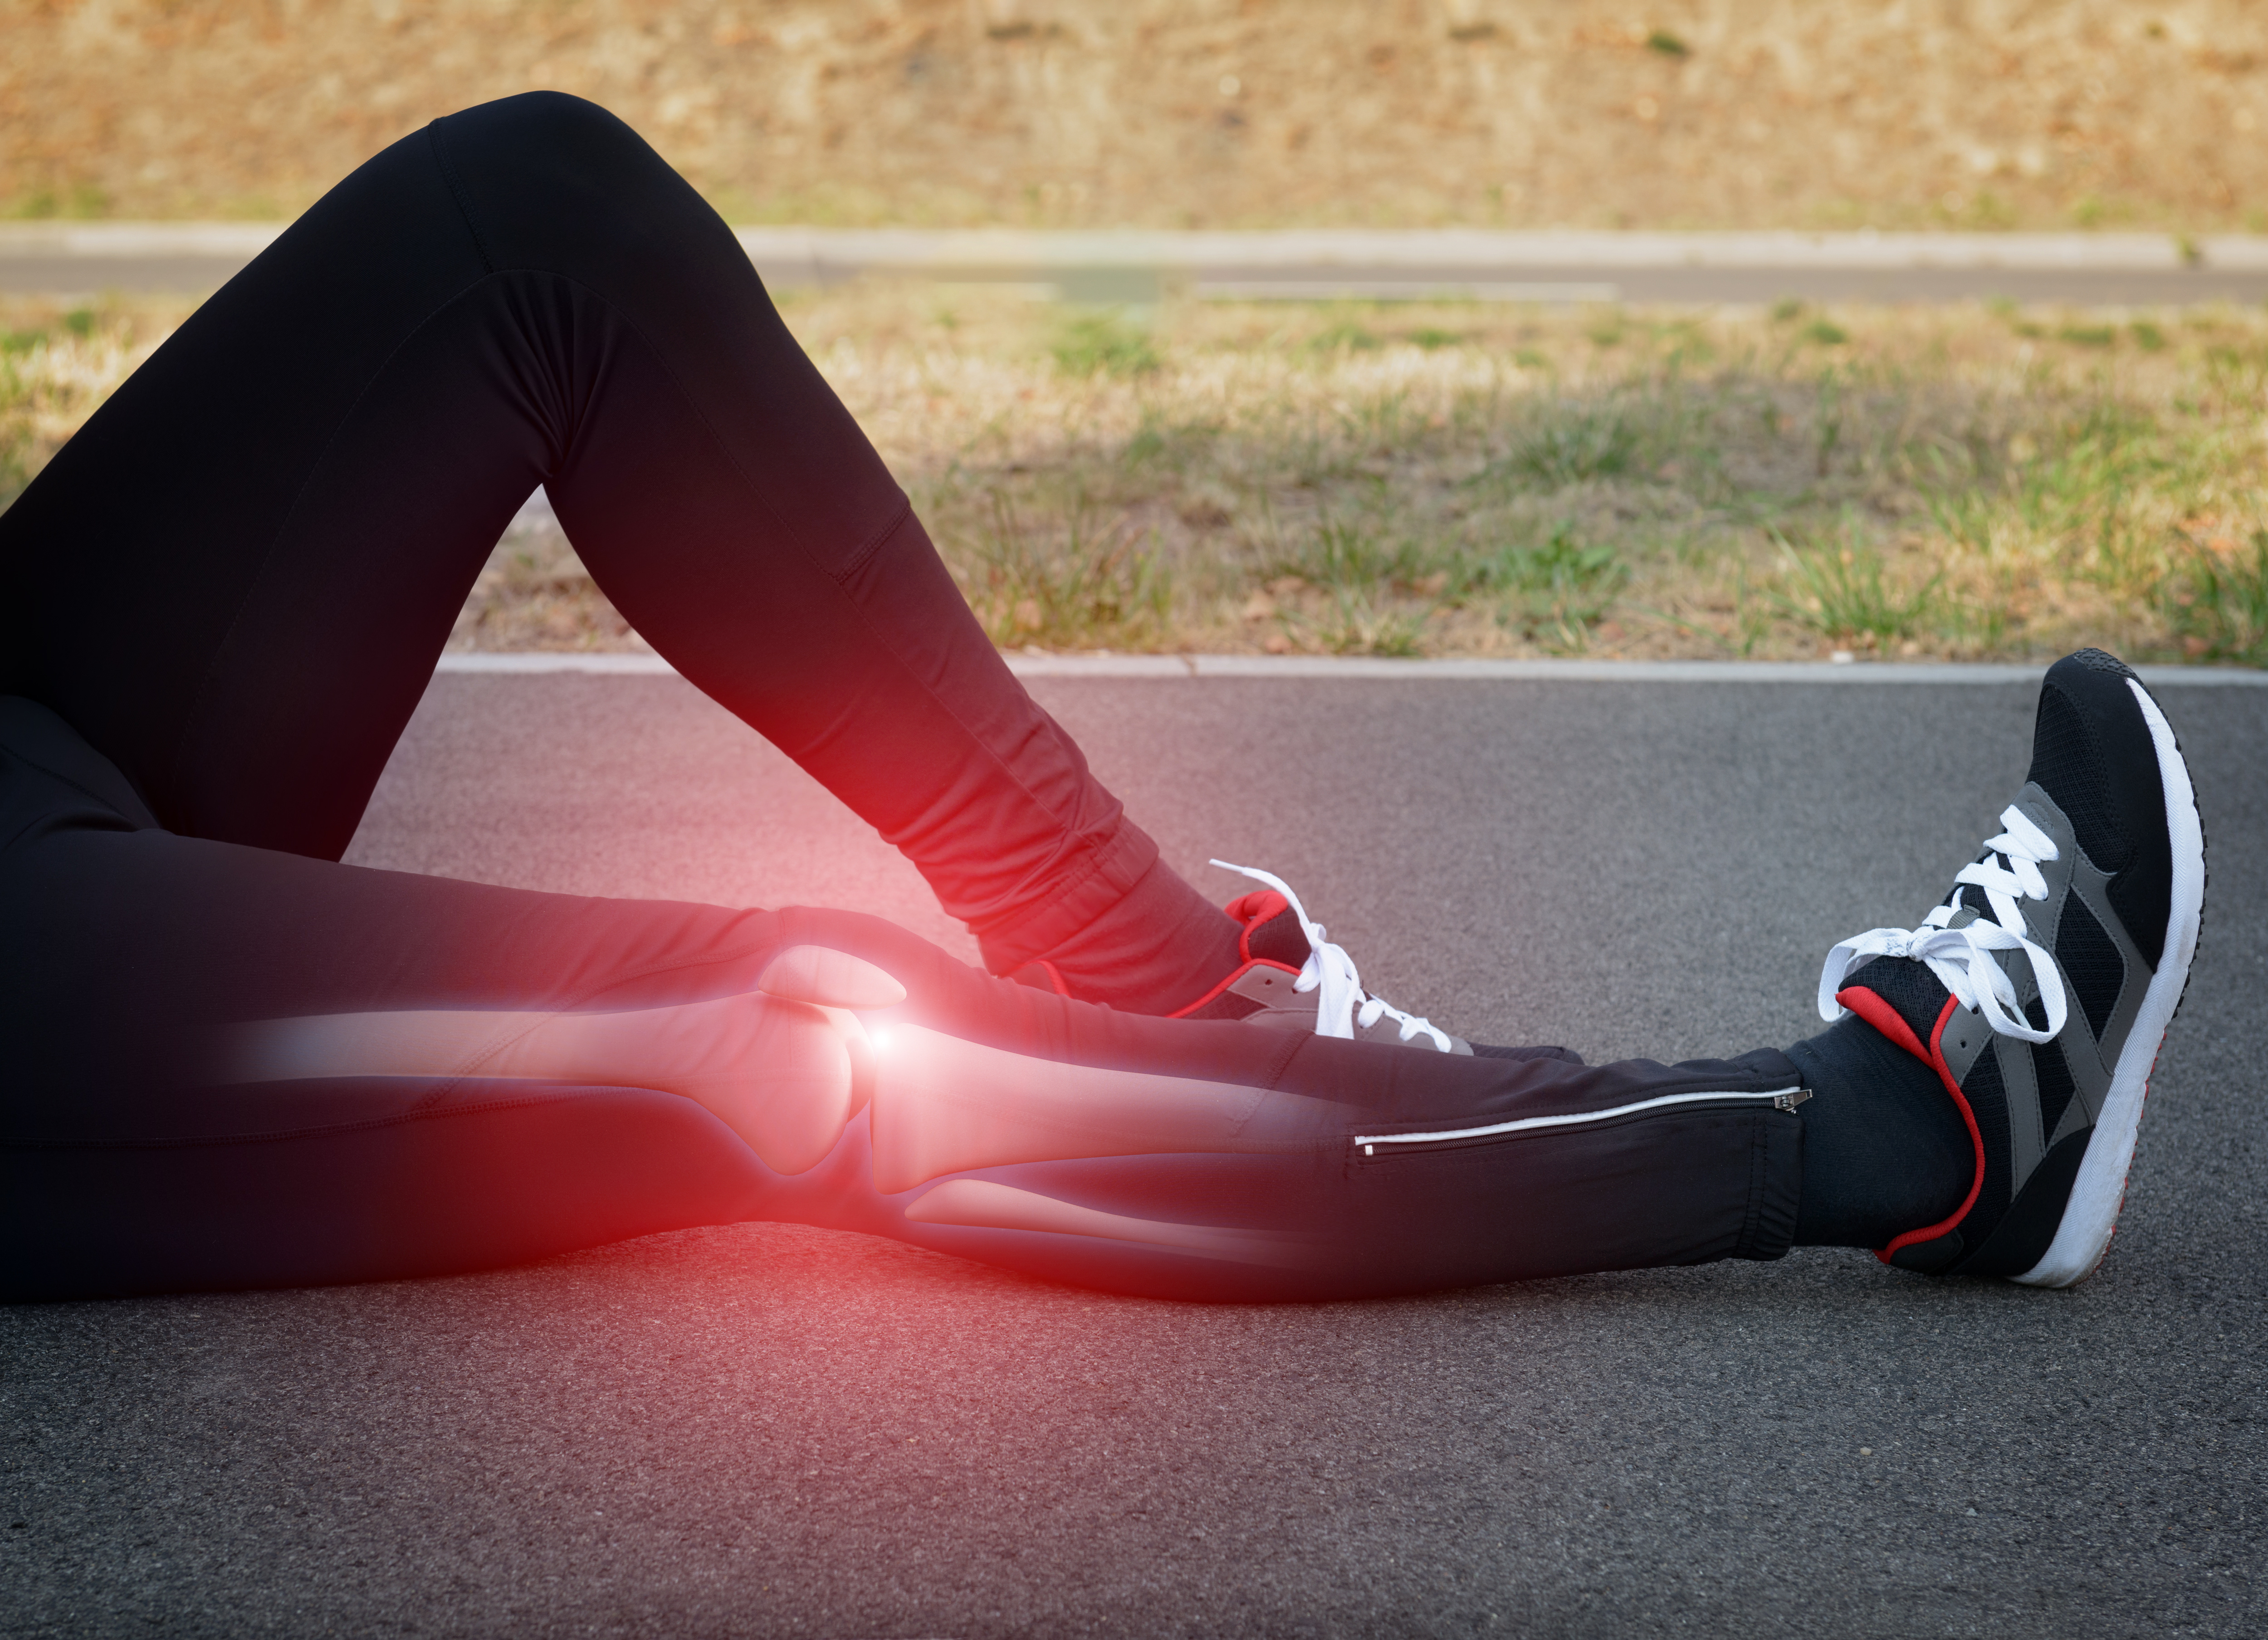 Runner Knee Injury And Pain With Leg Bones Visible